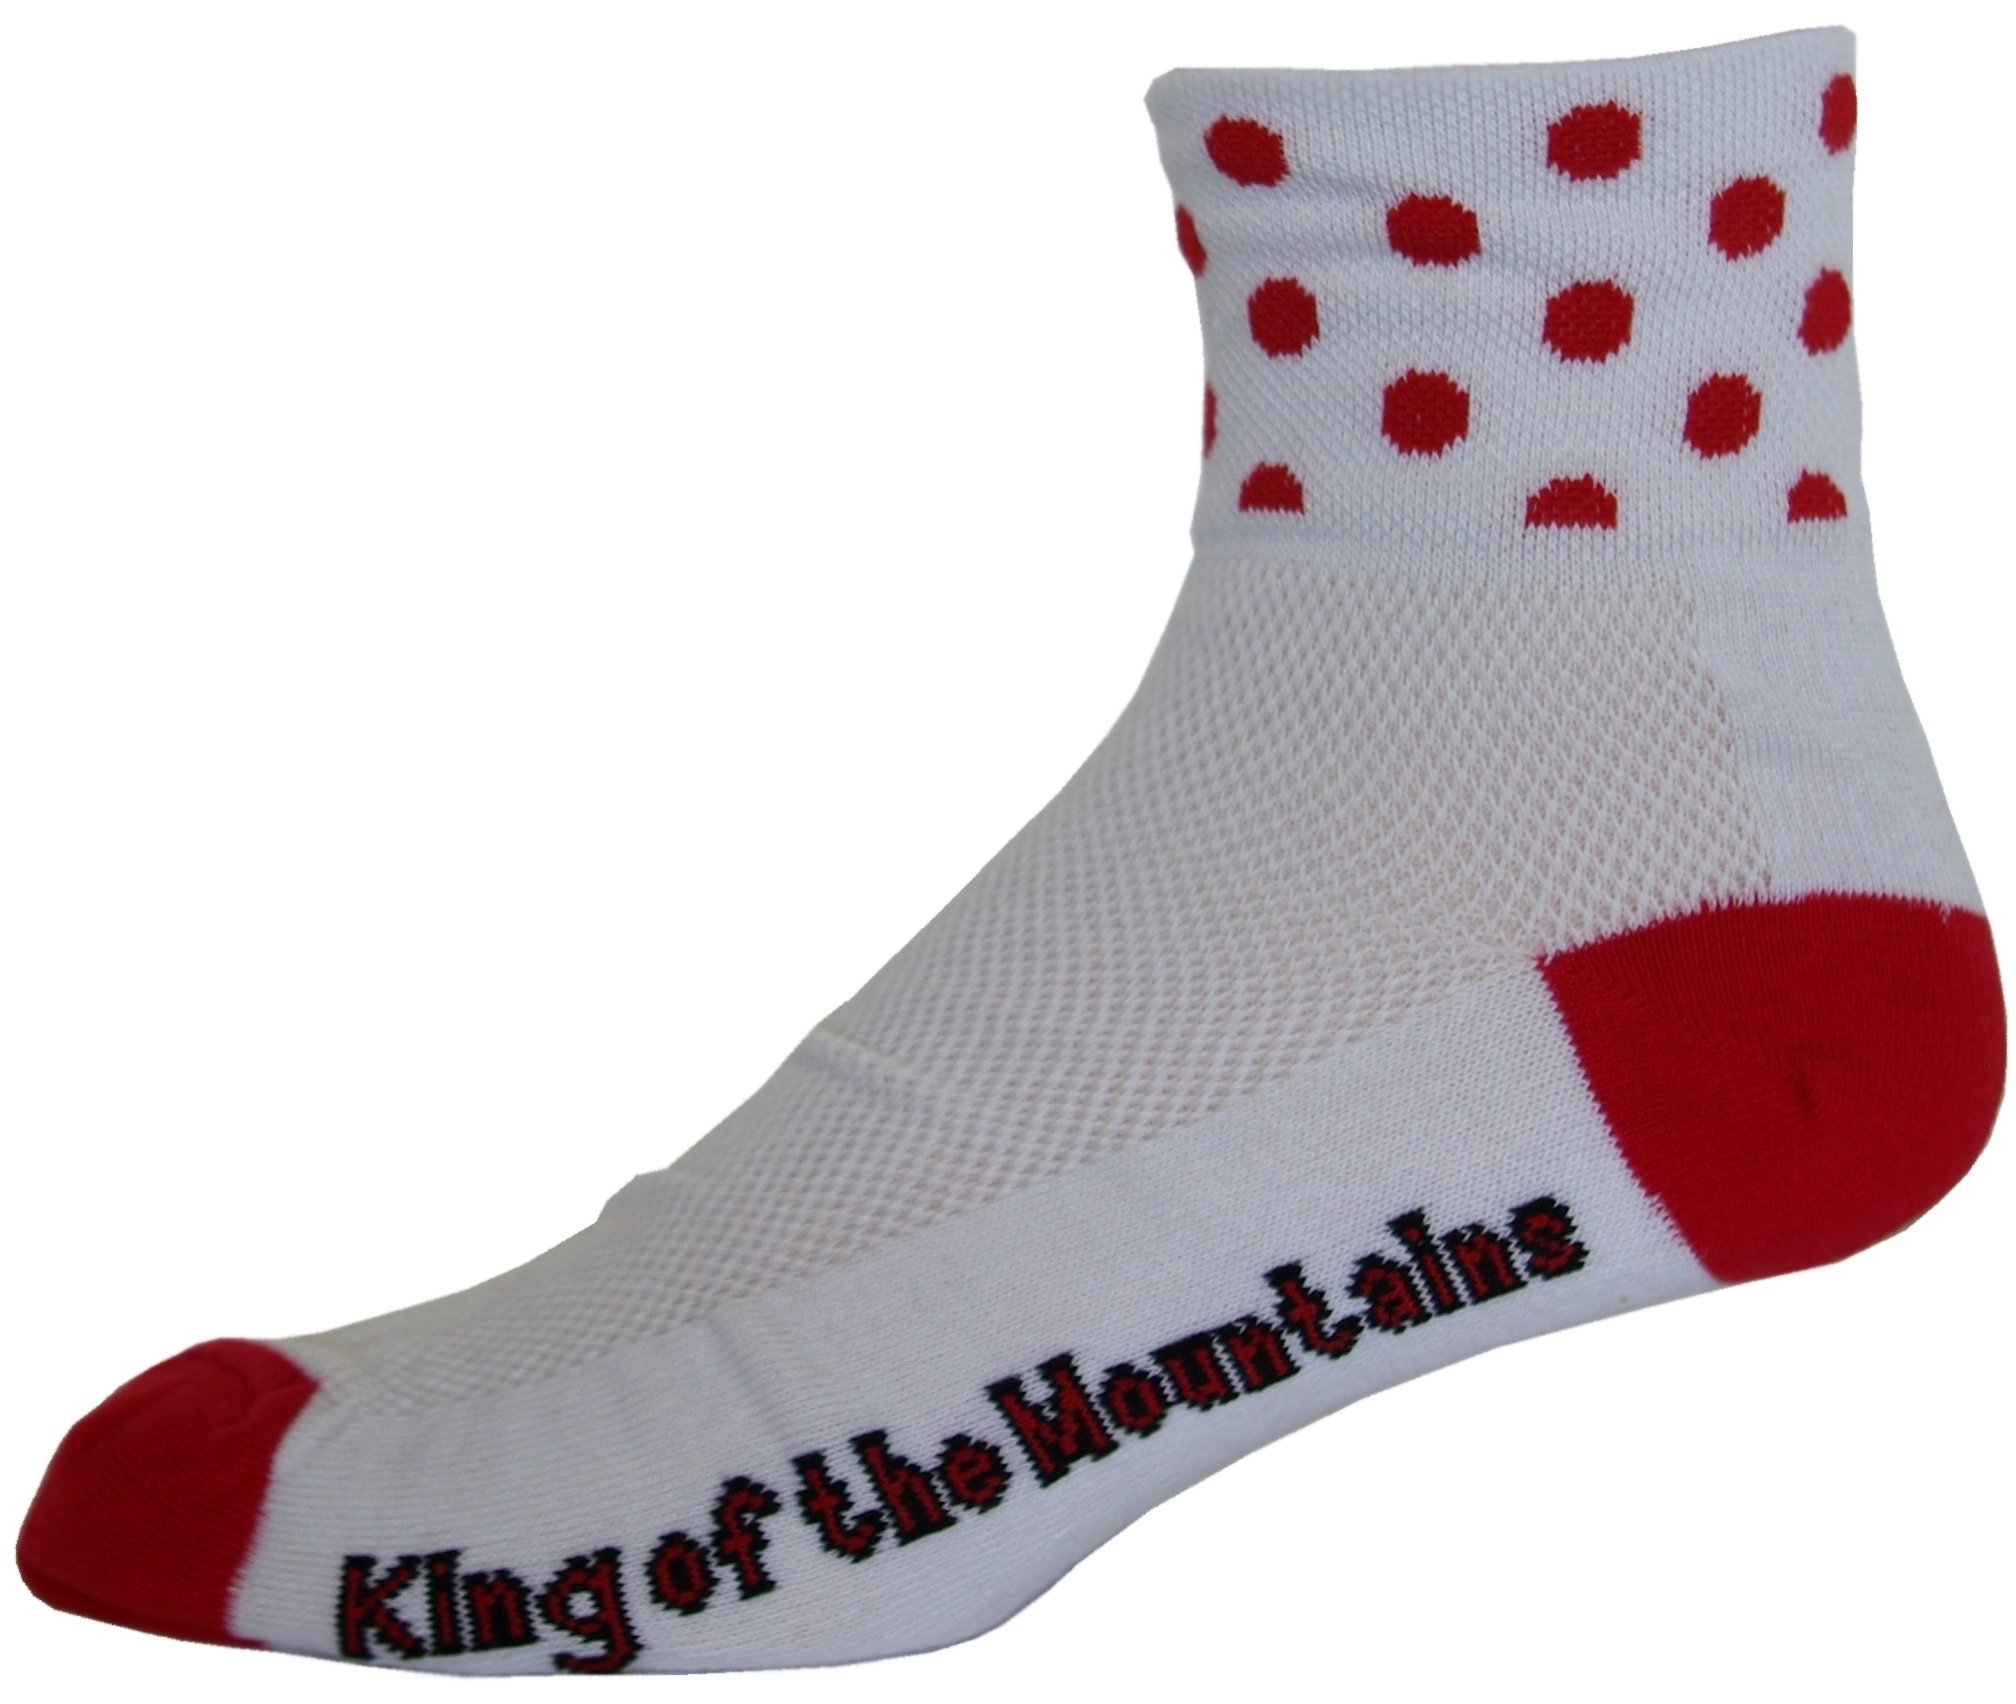 NLZ King of the Mountains Cycling Socks